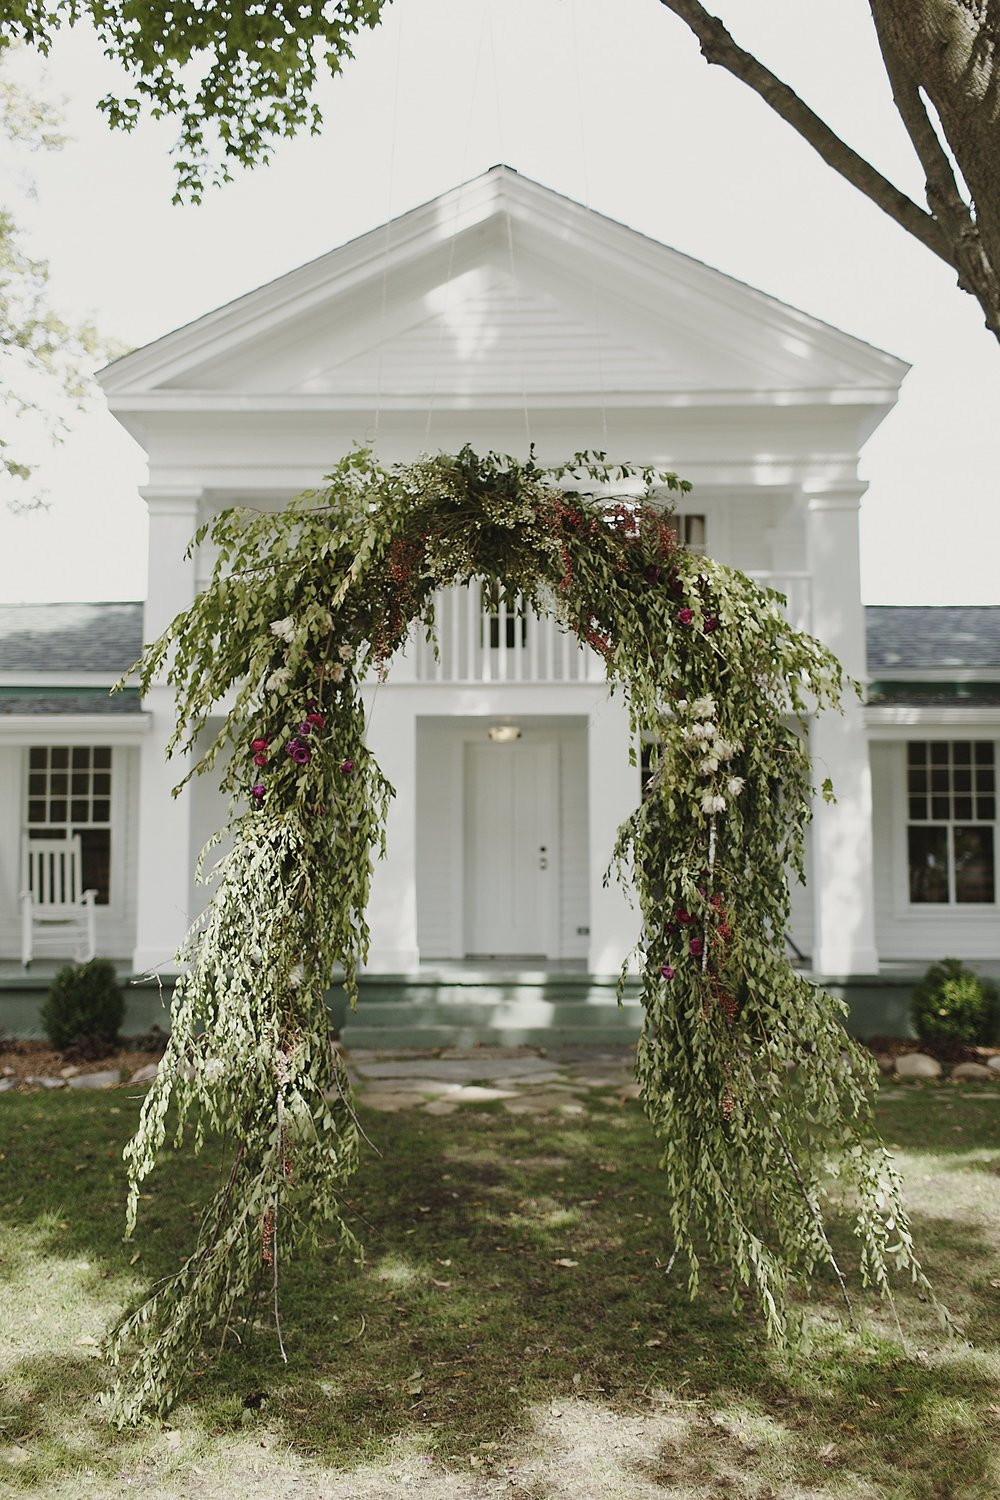 Cornman-farms-wedding-arch